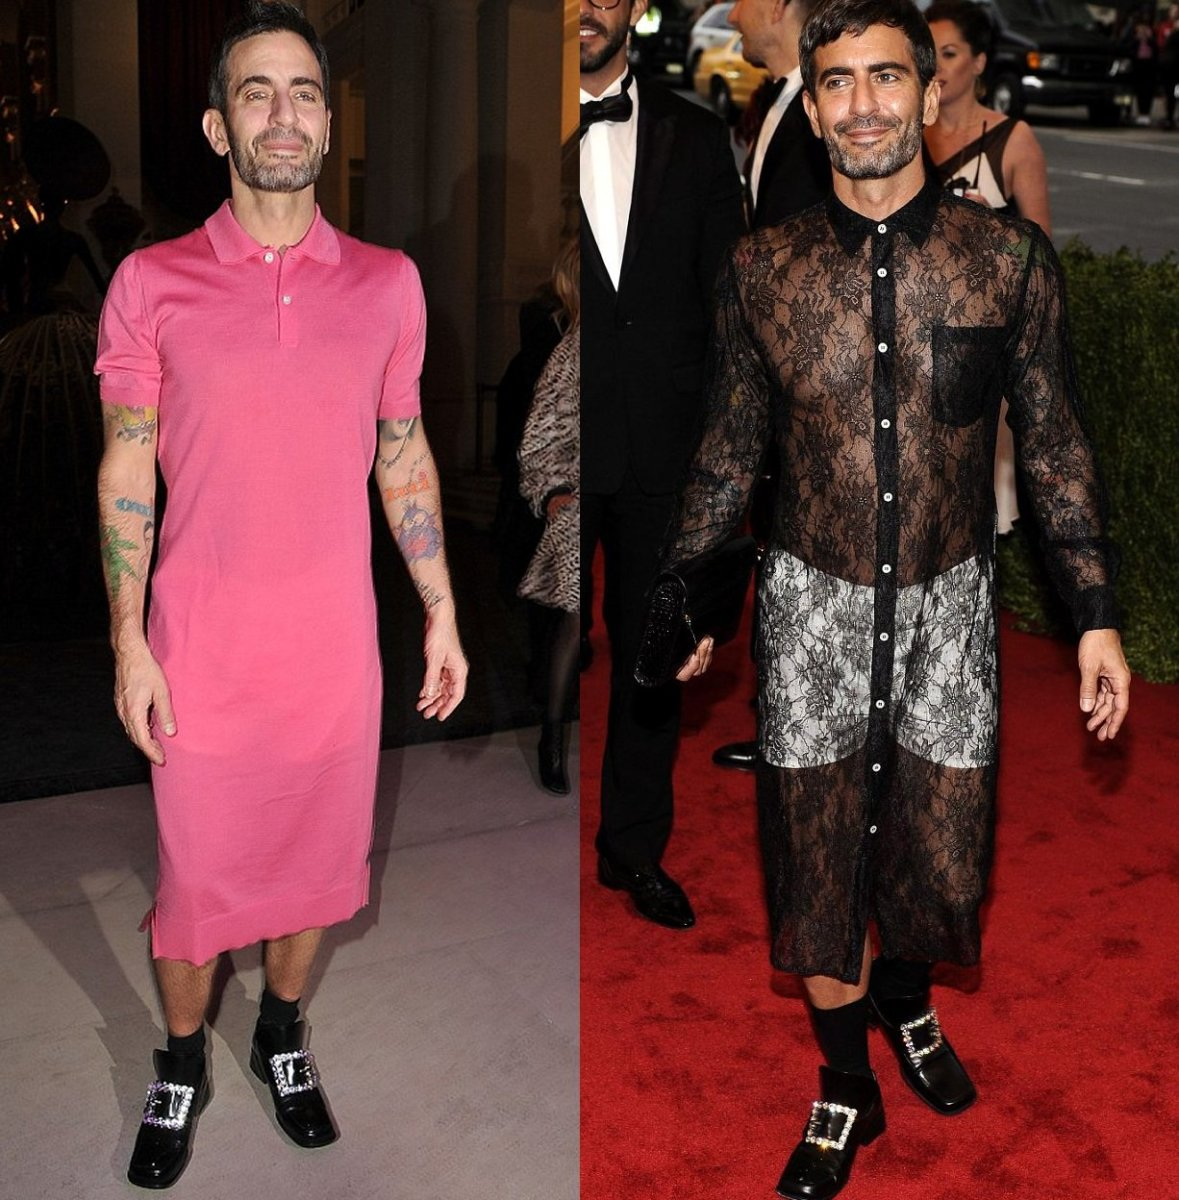 On the left, Marc Jacobs wears a pink t-shirt dress during Paris Fashion Week 2012 and on the right, he wears a black lacy t-shirt dress while attending Met Gala 2012.